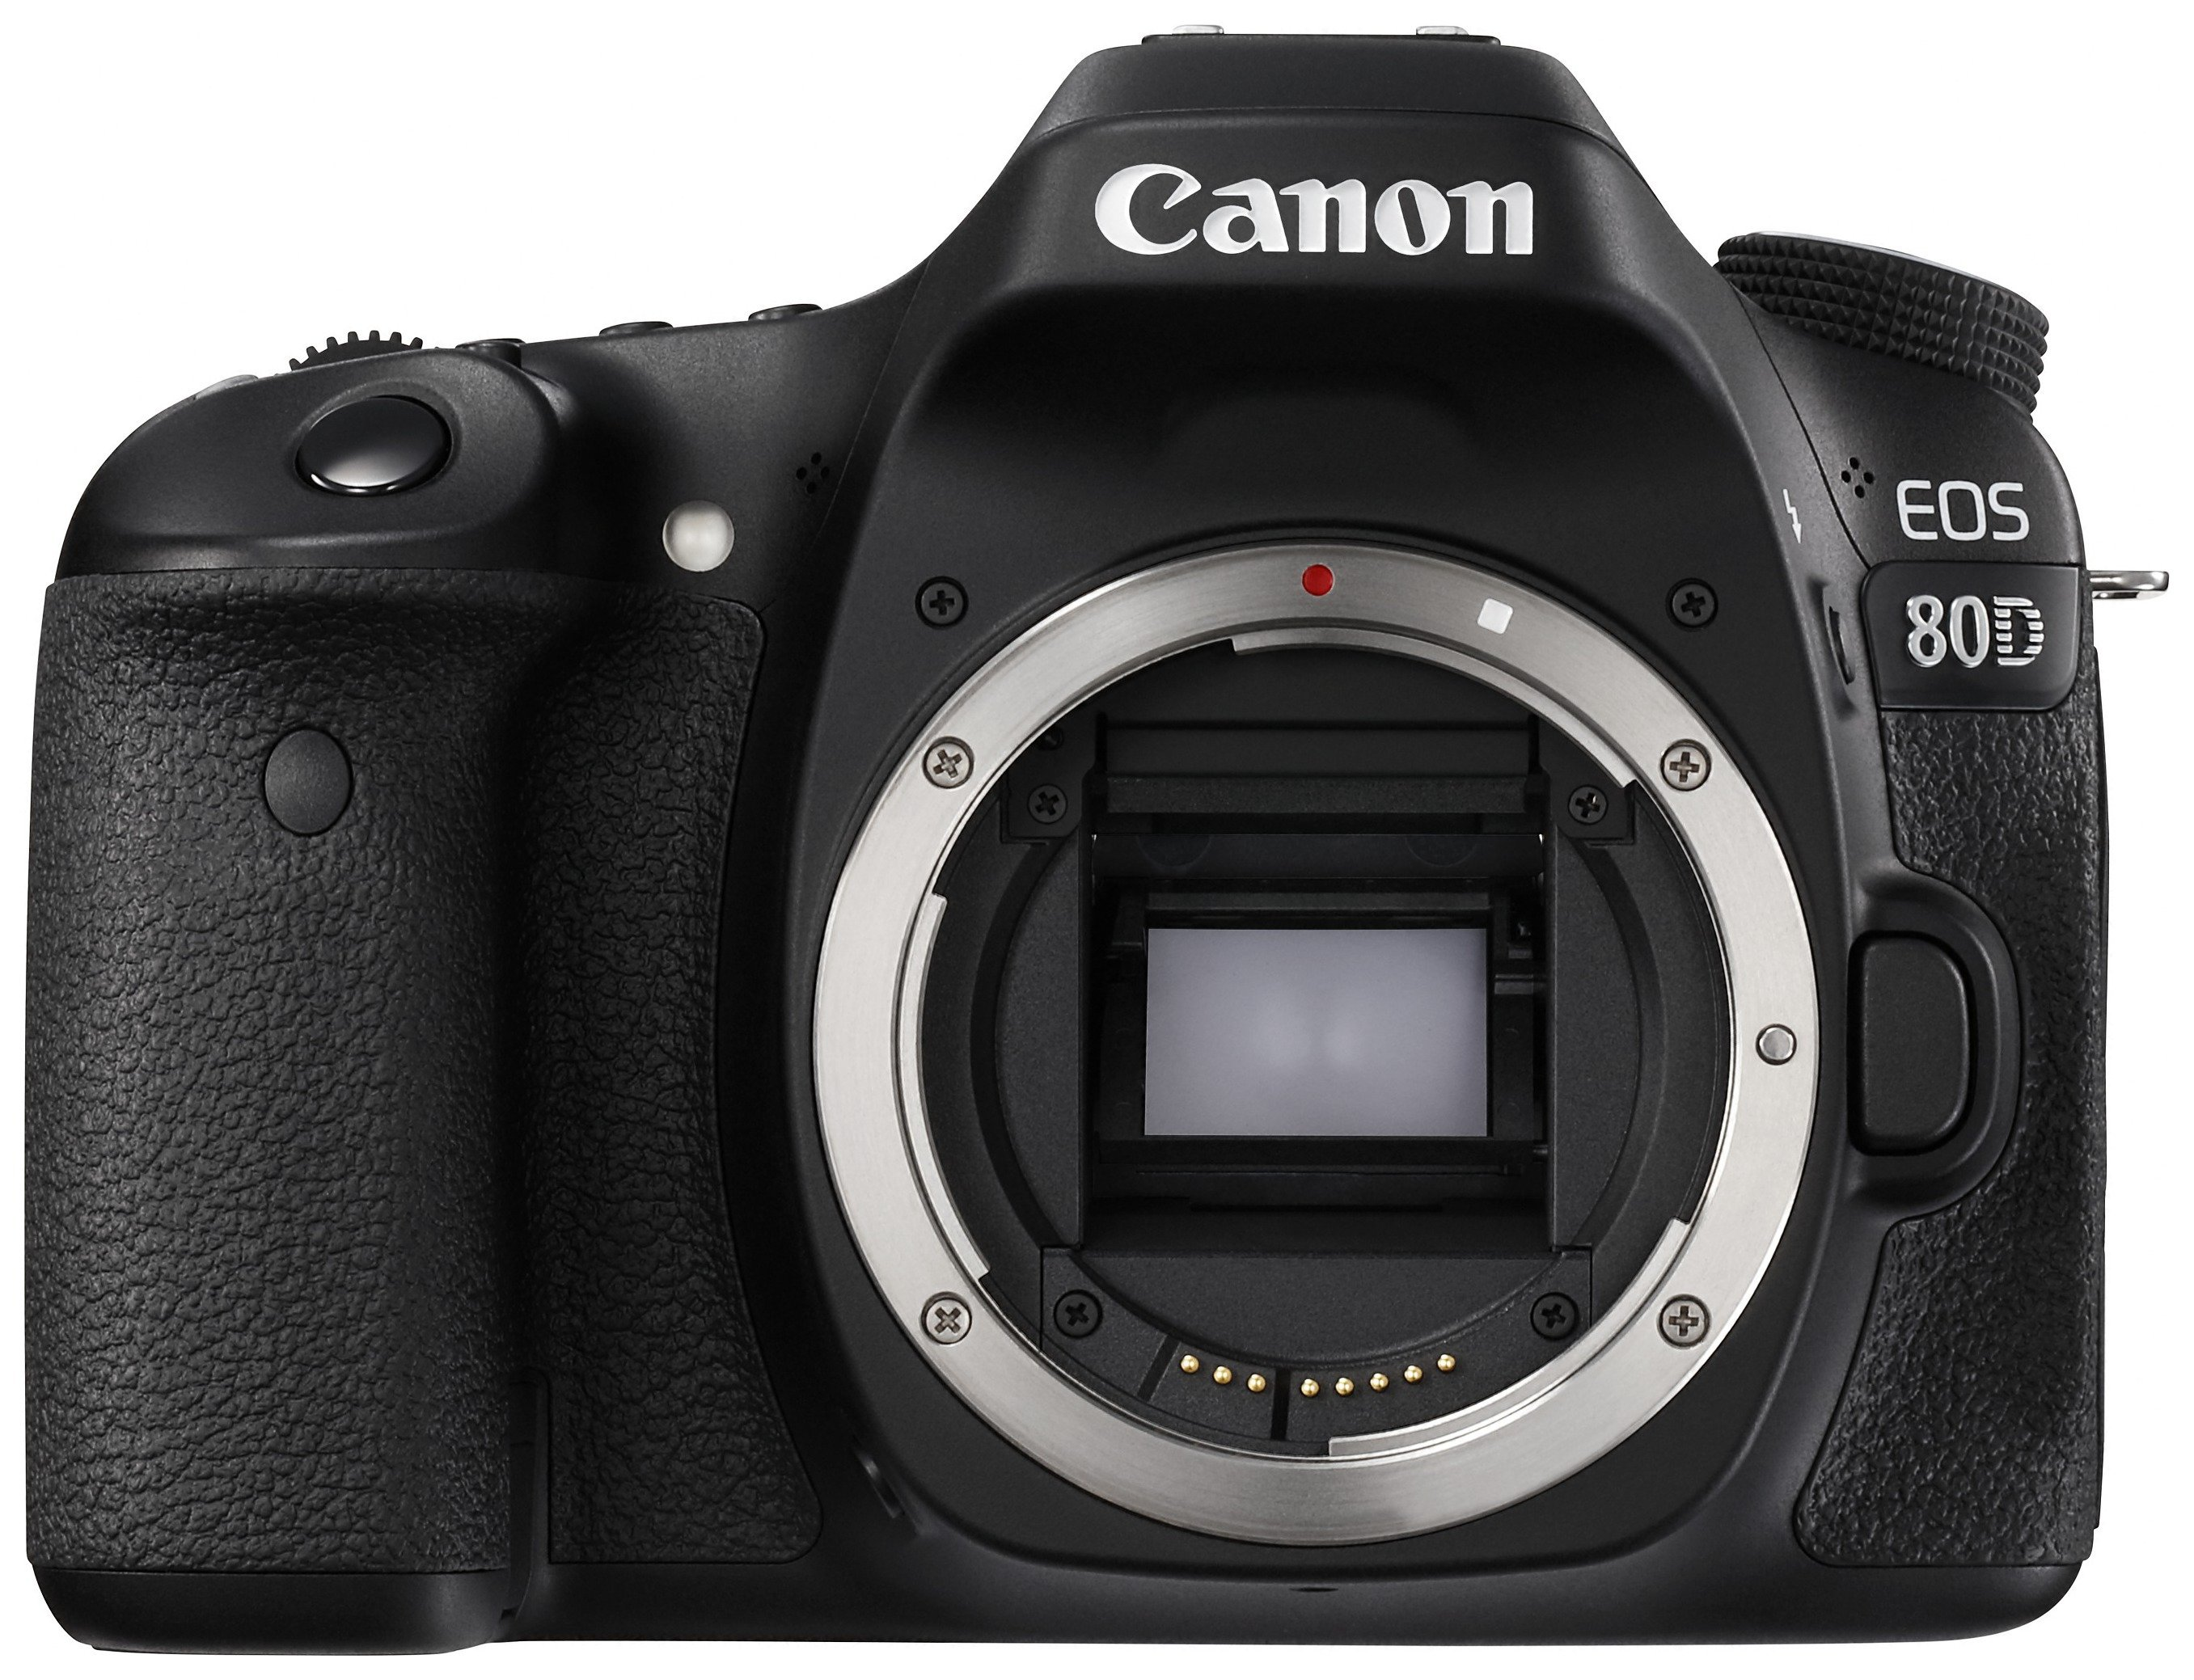 Click here for Canon - Digital SLR Camera - EOS 80D Body Only. prices